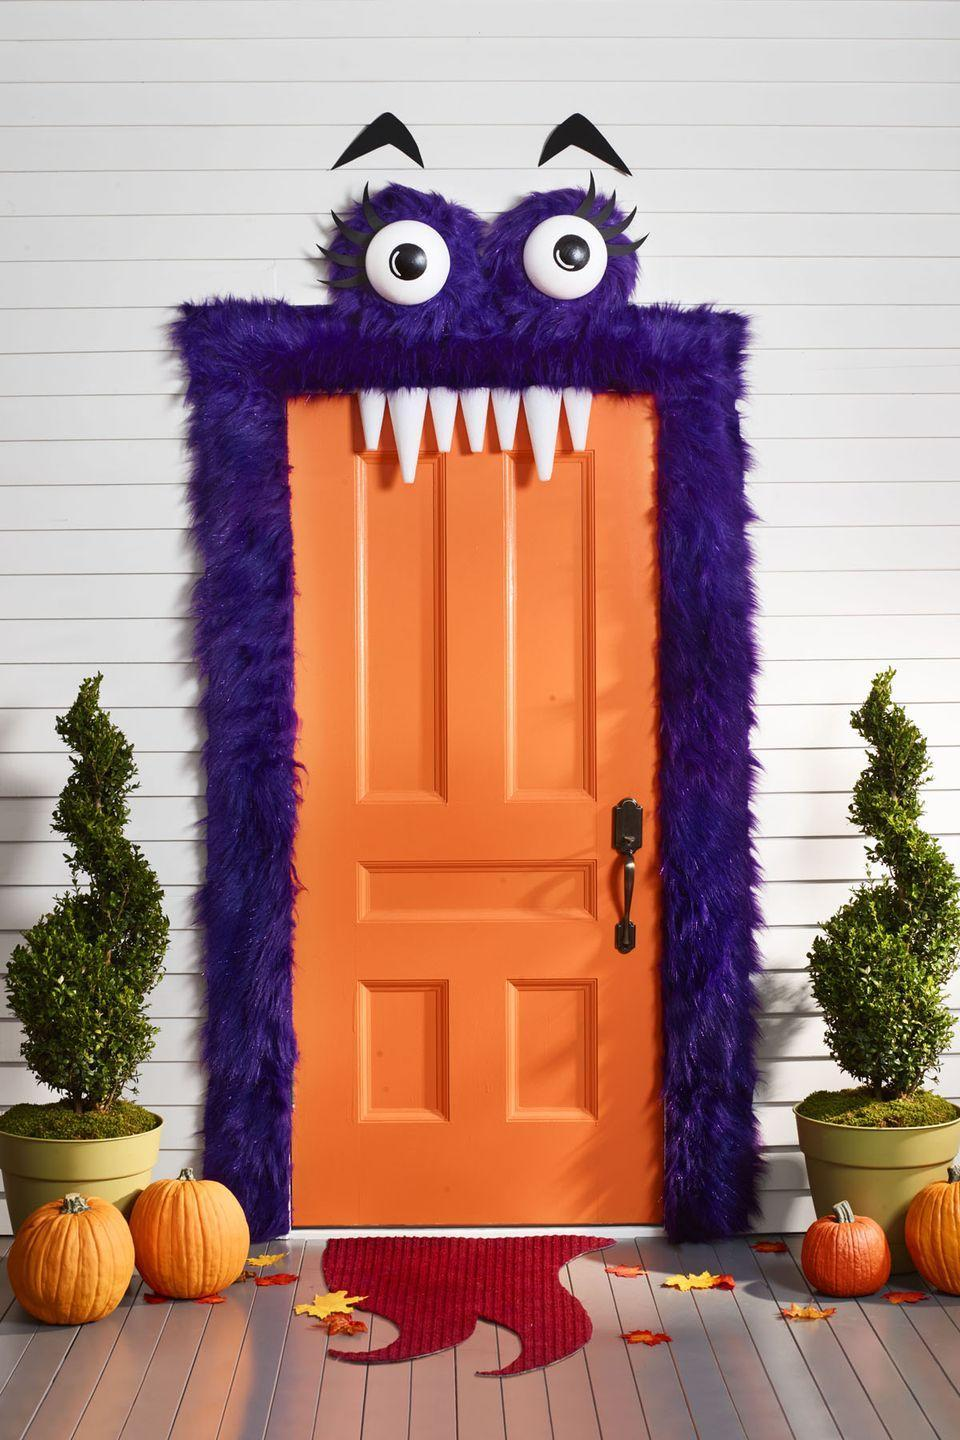 """<p>This adorable purple monster is the perfect way to welcome trick-or-treaters this Halloween.</p><p>1. To make eyes, paint black circles on two 8"""" foam half balls; let dry. Paint white highlight. Cut black foam eyelashes and eyebrows.<br></p><p>2. From 3 yards faux purple fur, cut two 16"""" squares and hot-glue each around a 12"""" foam wreath. Glue eyeballs in center and eyelashes across top. Add a horizontal string across back of each eye for hanging.<br></p><p>3. Frame door with strips of fur using tacks of hem tape. Use Command Hooks to hang eyes above. Tack or hem tape eyebrows in place.<br></p><p>4. For teeth, use foam cones, and then attach to top of door frame with hem tape.<br></p><p>5. Draw and cut tongue shape from floor mat. Spray-paint red; let dry.</p>"""